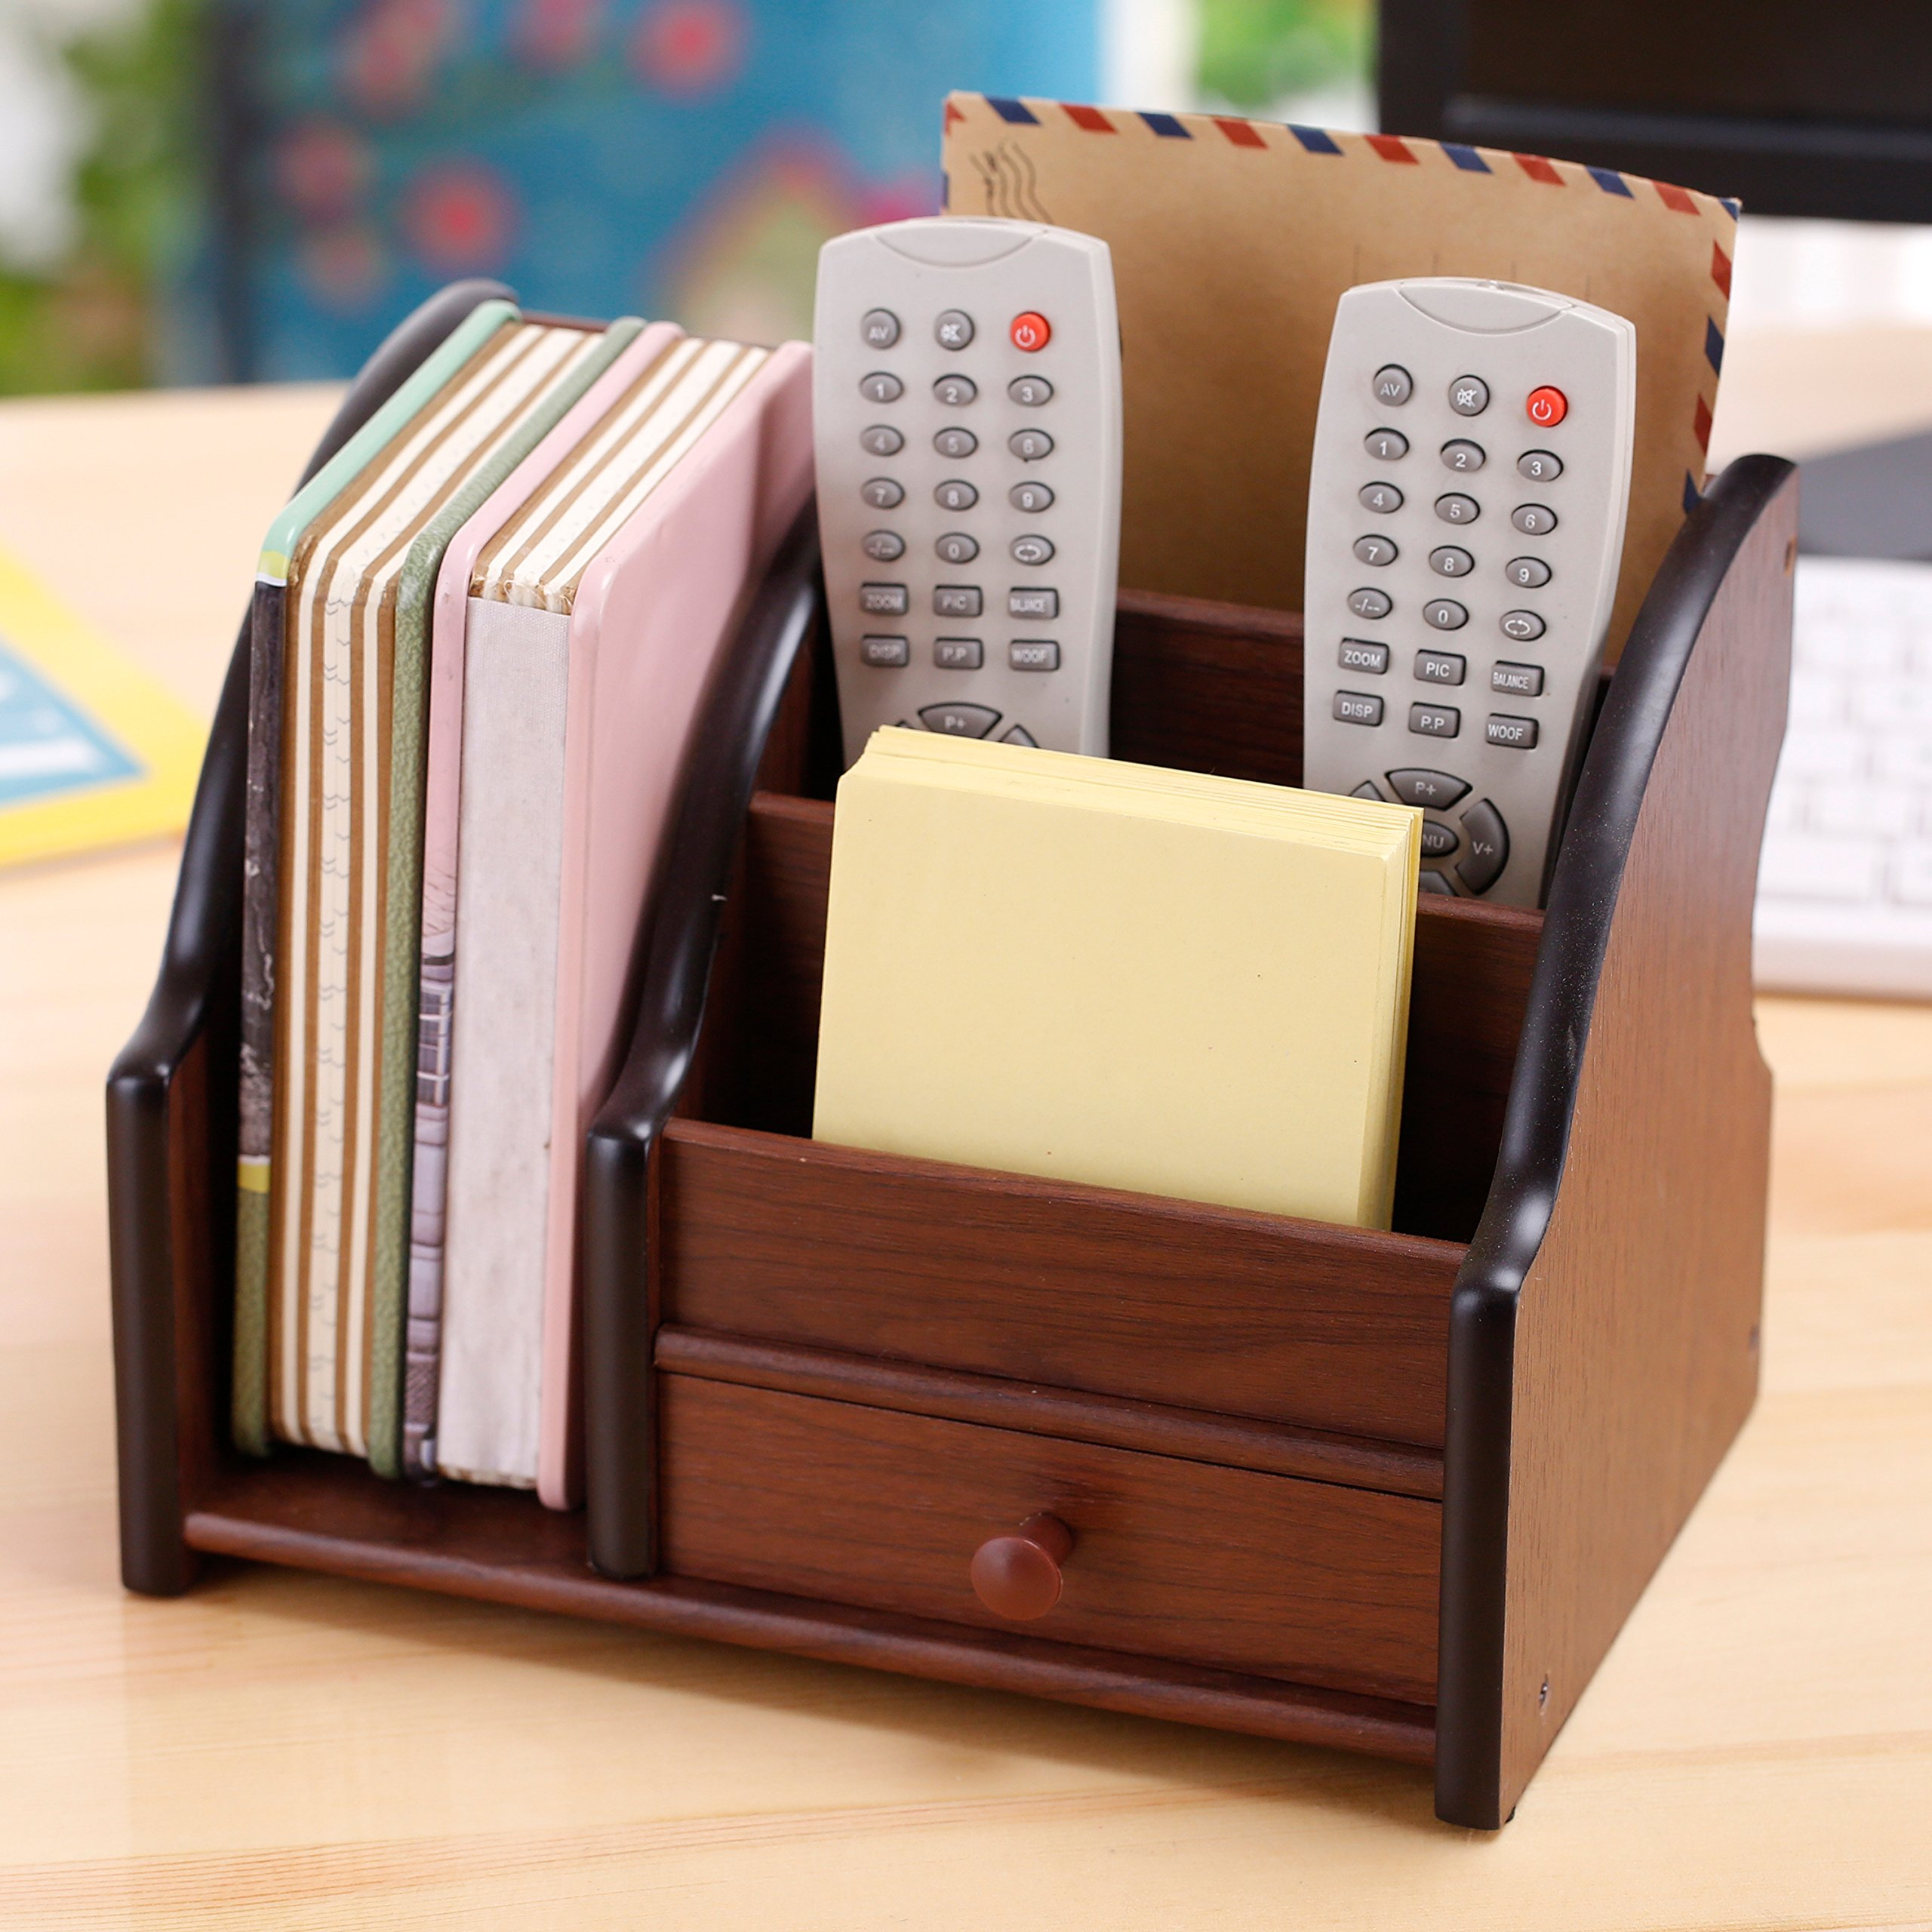 5 Compartment Wood Desktop Office Supply Organizer / Mail Holder Rack with Storage Drawer by MyGift (Image #3)